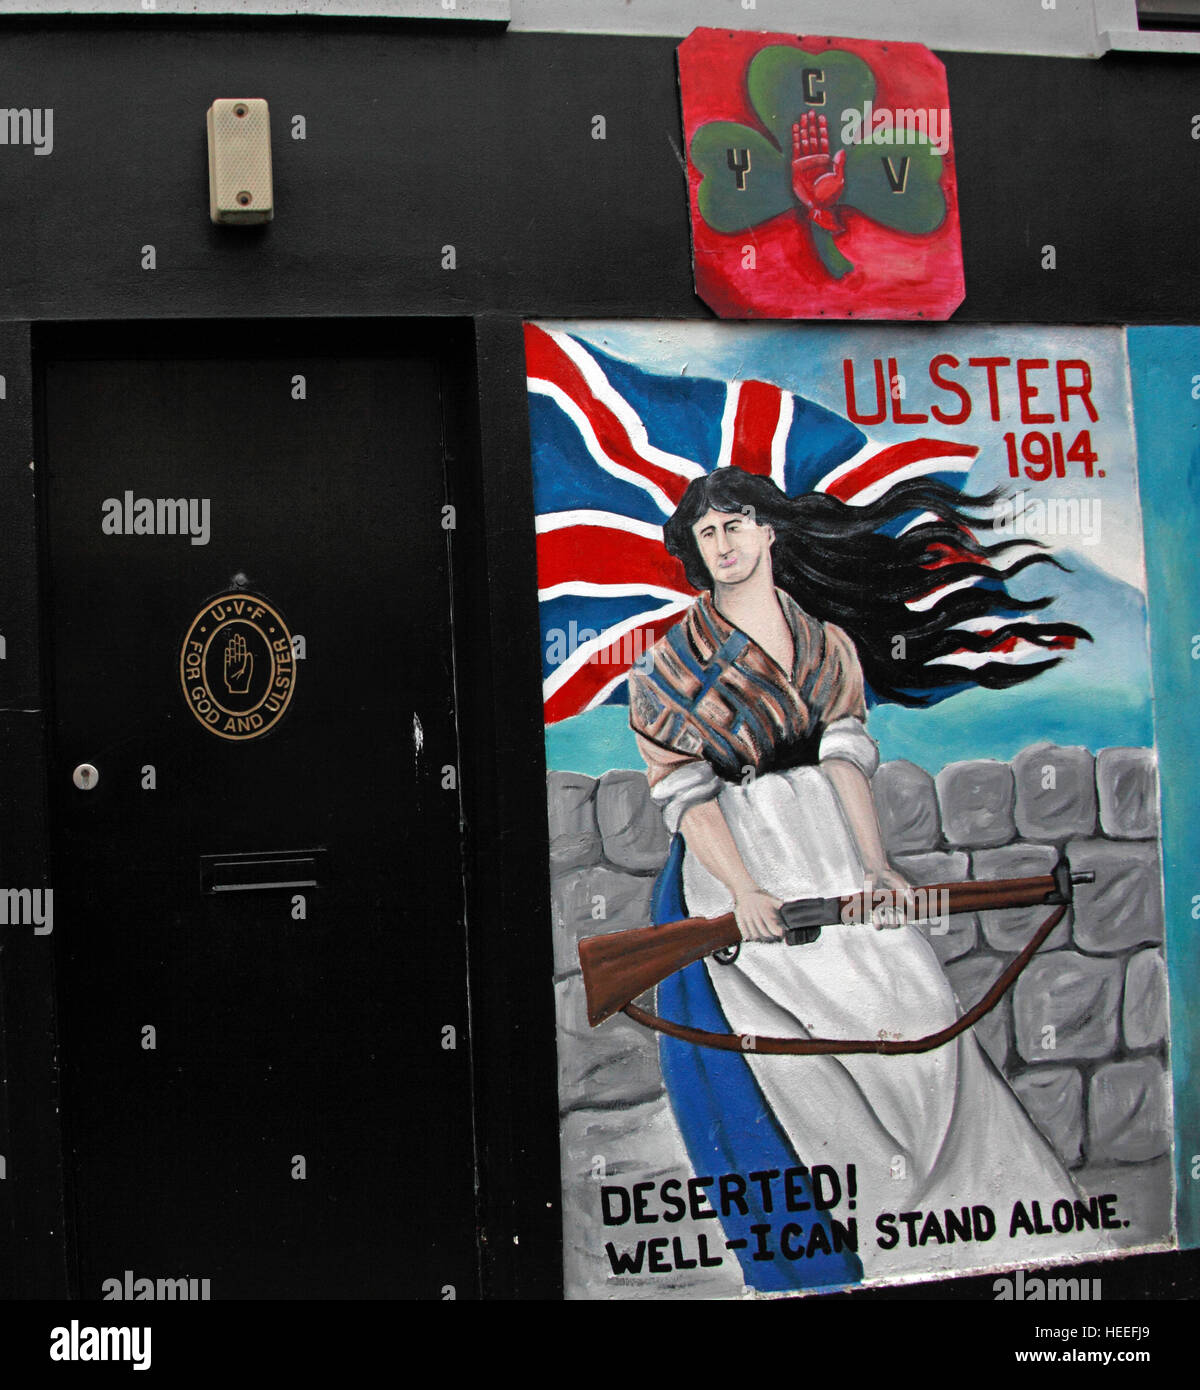 Mural,art,British,Union,wall,walls,gable end,gable,end,Northern,Irish,Republican,violence,para,military,paramilitary,fallen,Martyrs,martyr,street,rd,road,painting,painted,symbolism,Loyalist,culture,history,community,well,I,can,stand,alone,rifle,CYV,orange,GoTonySmith,@HotpixUK,Tony,Smith,UK,GB,Great,Britain,United,Kingdom,Irish,British,Ireland,problem,with,problem with,issue with,NI,Northern,Northern Ireland,Belfast,City,Centre,Art,Artists,the,troubles,The Troubles,Good Friday Agreement,Peace,honour,painting,wall,walls,tribute,republicanism,Fight,Justice,West,Beal,feirste,martyrs,social,tour,tourism,tourists,urban,six,counties,6,backdrop,county,Antrim,Shankill,Rd,Road,Royal,Royalist,Loyalist,Belfast streets,Buy Pictures of,Buy Images Of,Images of,Stock Images,Tony Smith,United Kingdom,Great Britain,British Isles